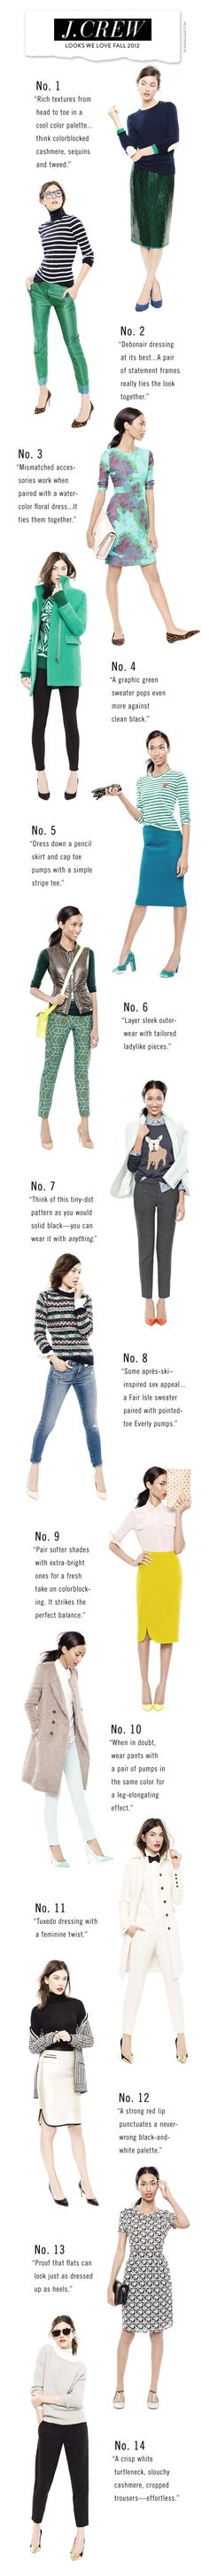 J.Crew Looks We Love - A couple nice ones, several that I'll never wear.